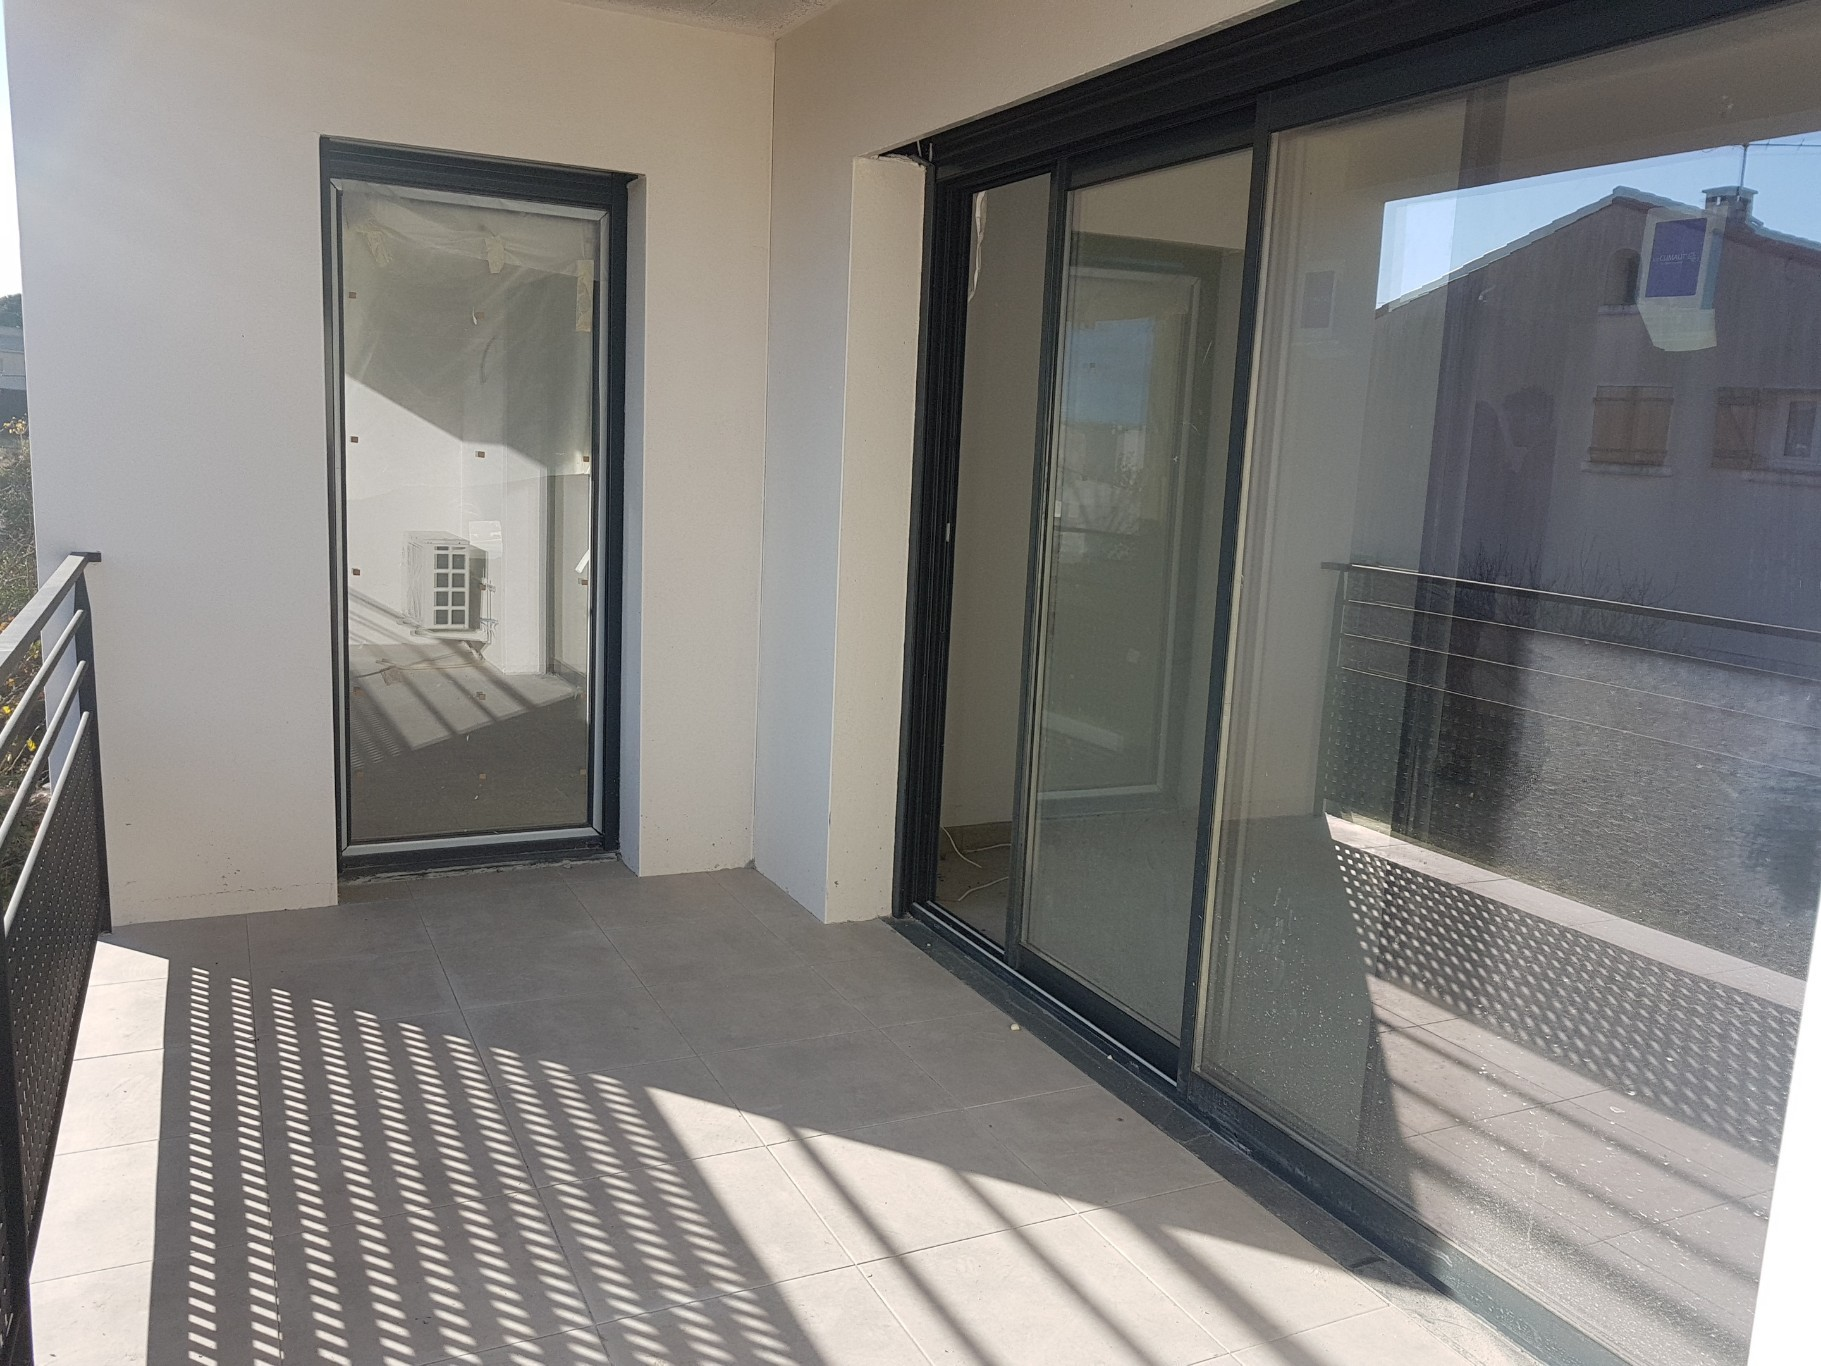 Baillargues vente appartement 3 pi ces 66m2 232 000 for Conseil immo